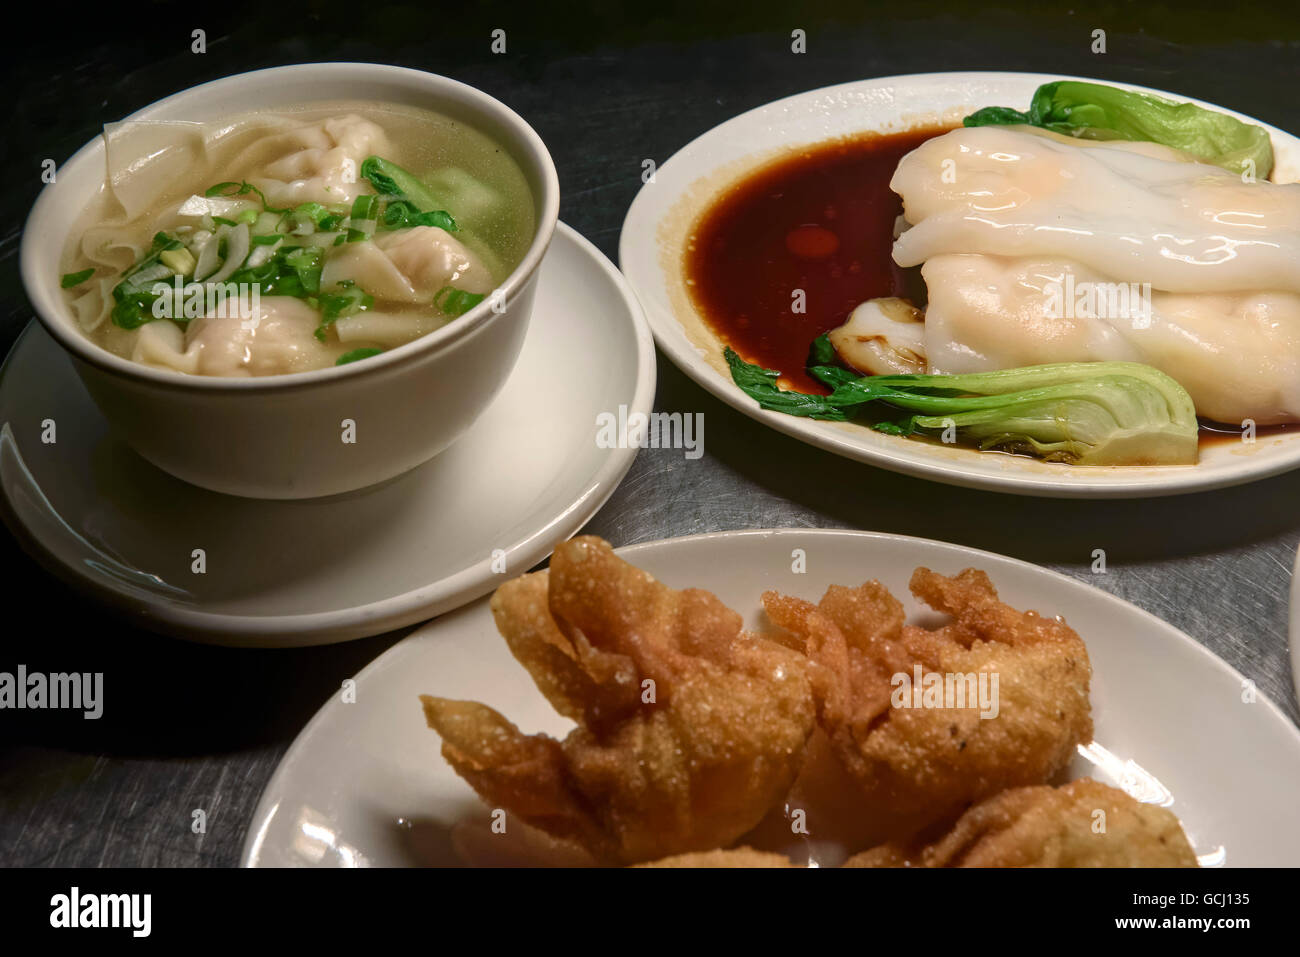 Asia Haus Hamburg Dim Sum Starter And Wan Tan Soup In Restaurant Dim Sum Haus Stock